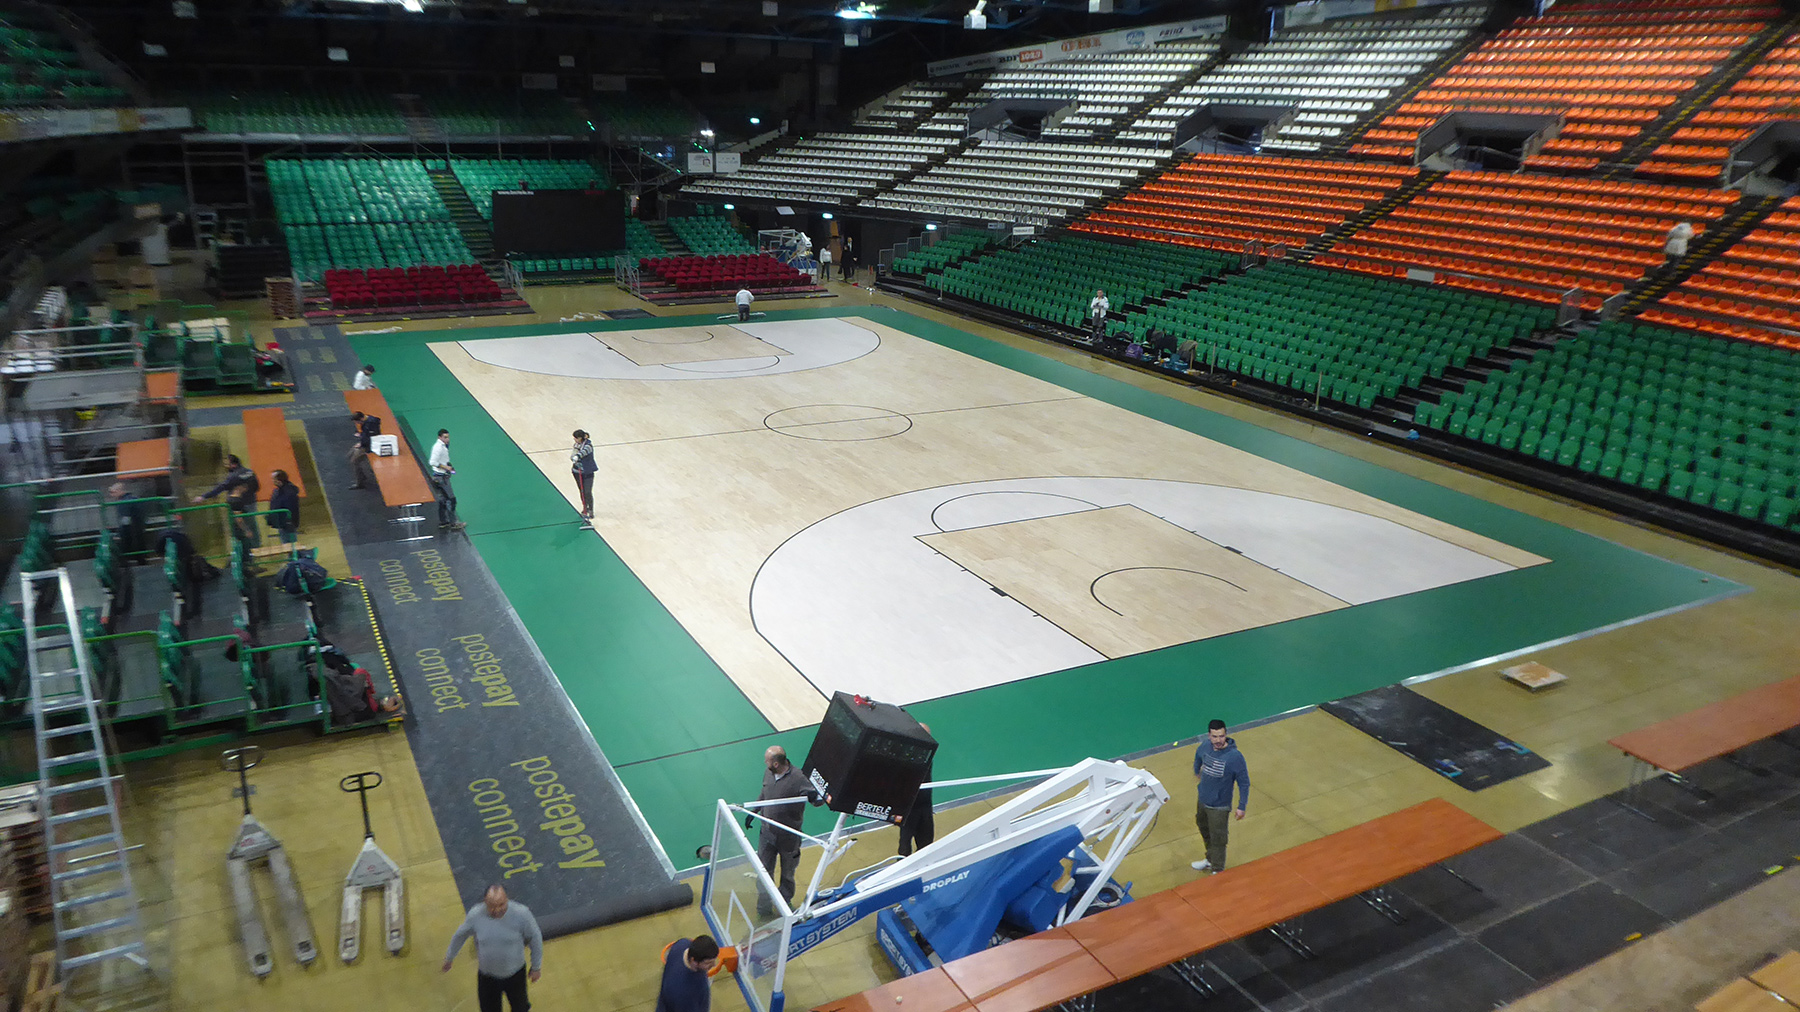 A view from above of the flooring installed at the Mandela Forum